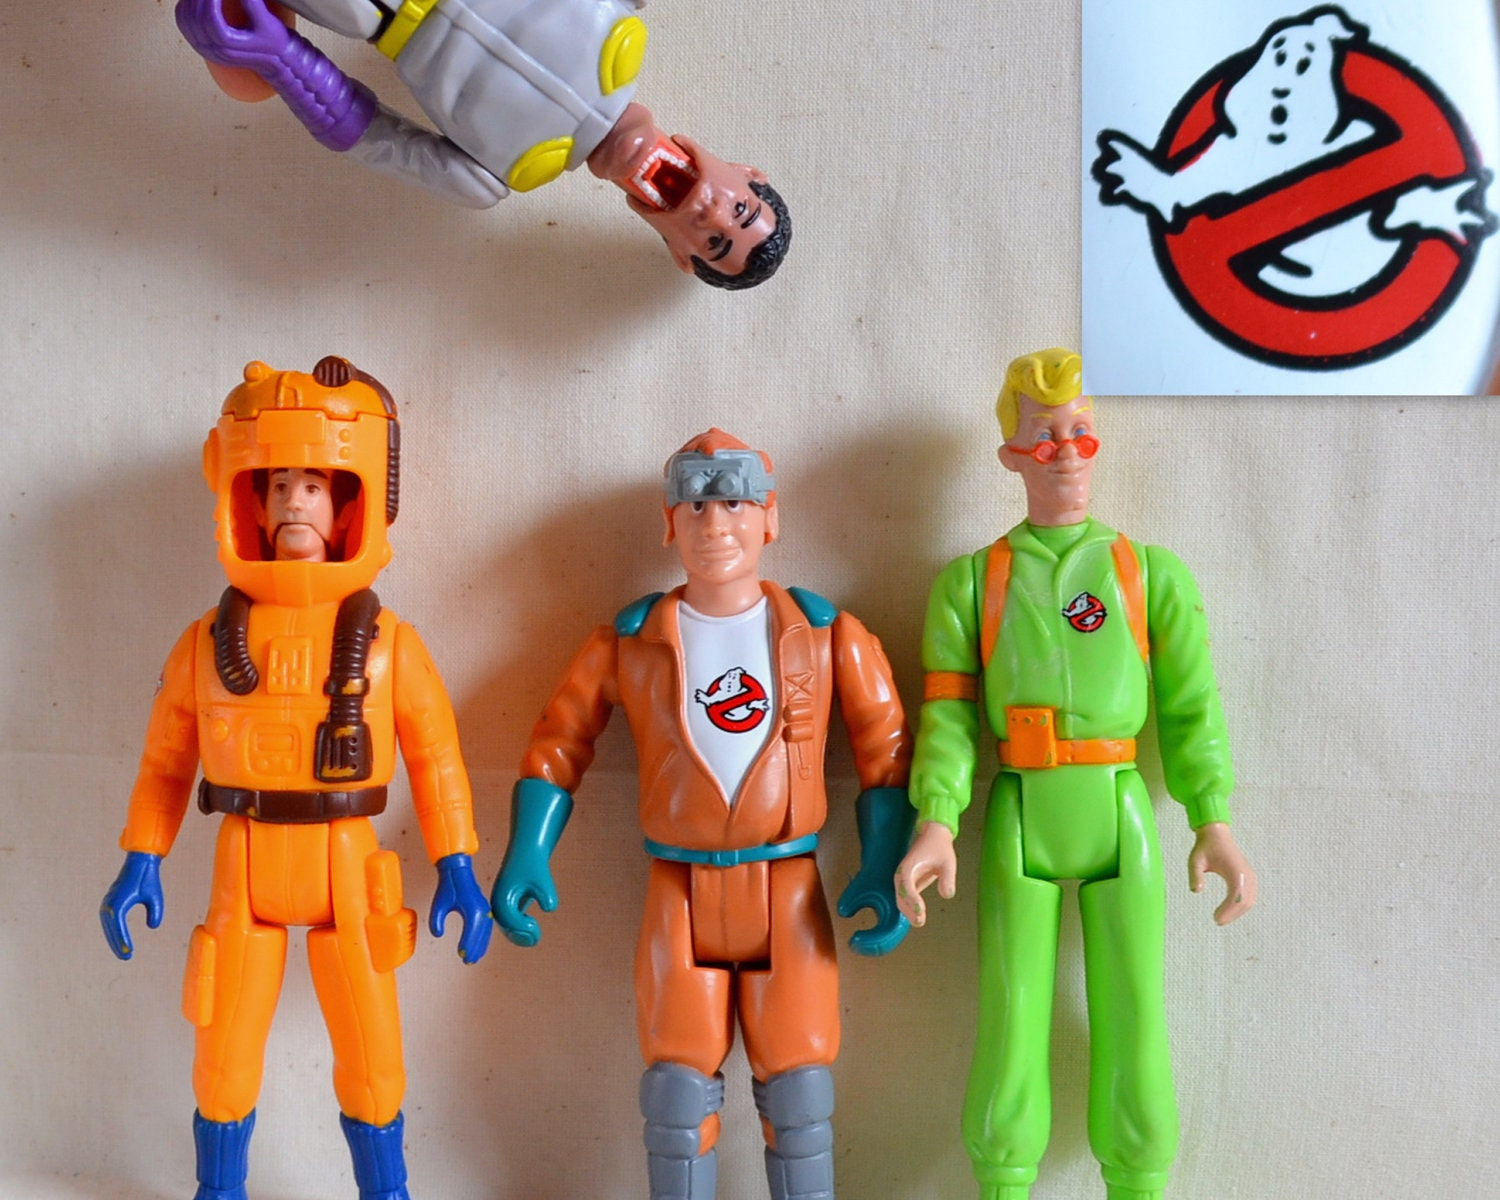 Vintage Ghostbusters Toy Lot 4 Figures 80 S Movie